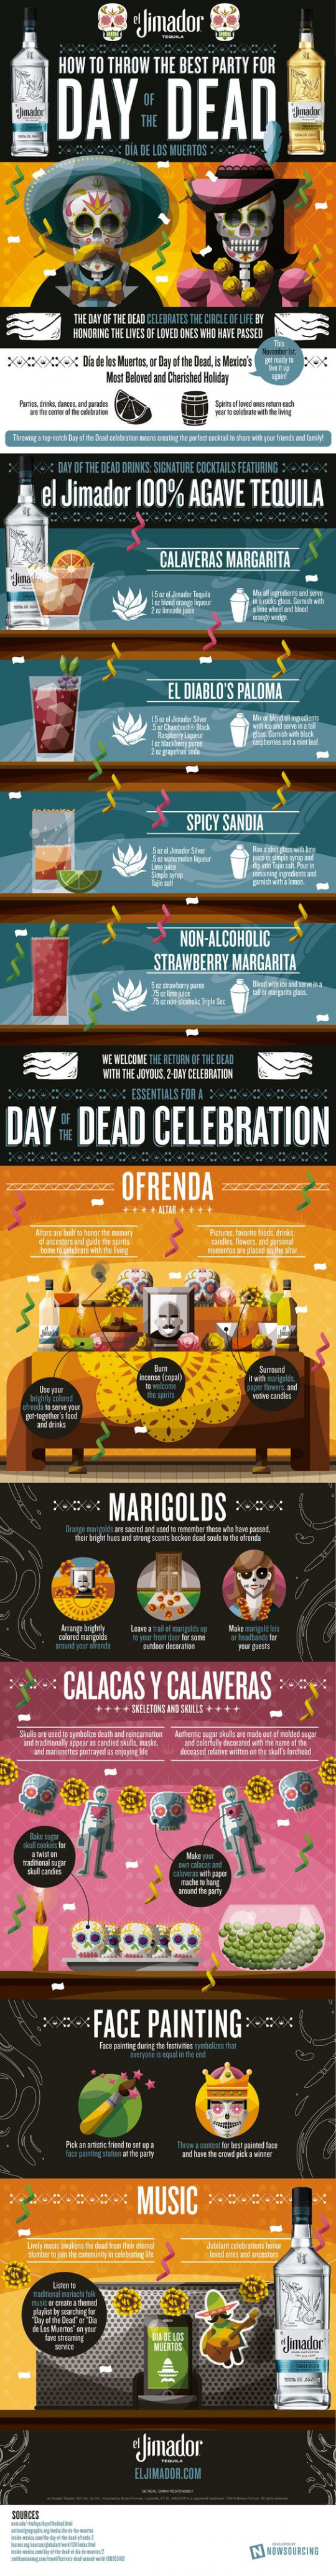 Day of the Dead - How to Celebrate